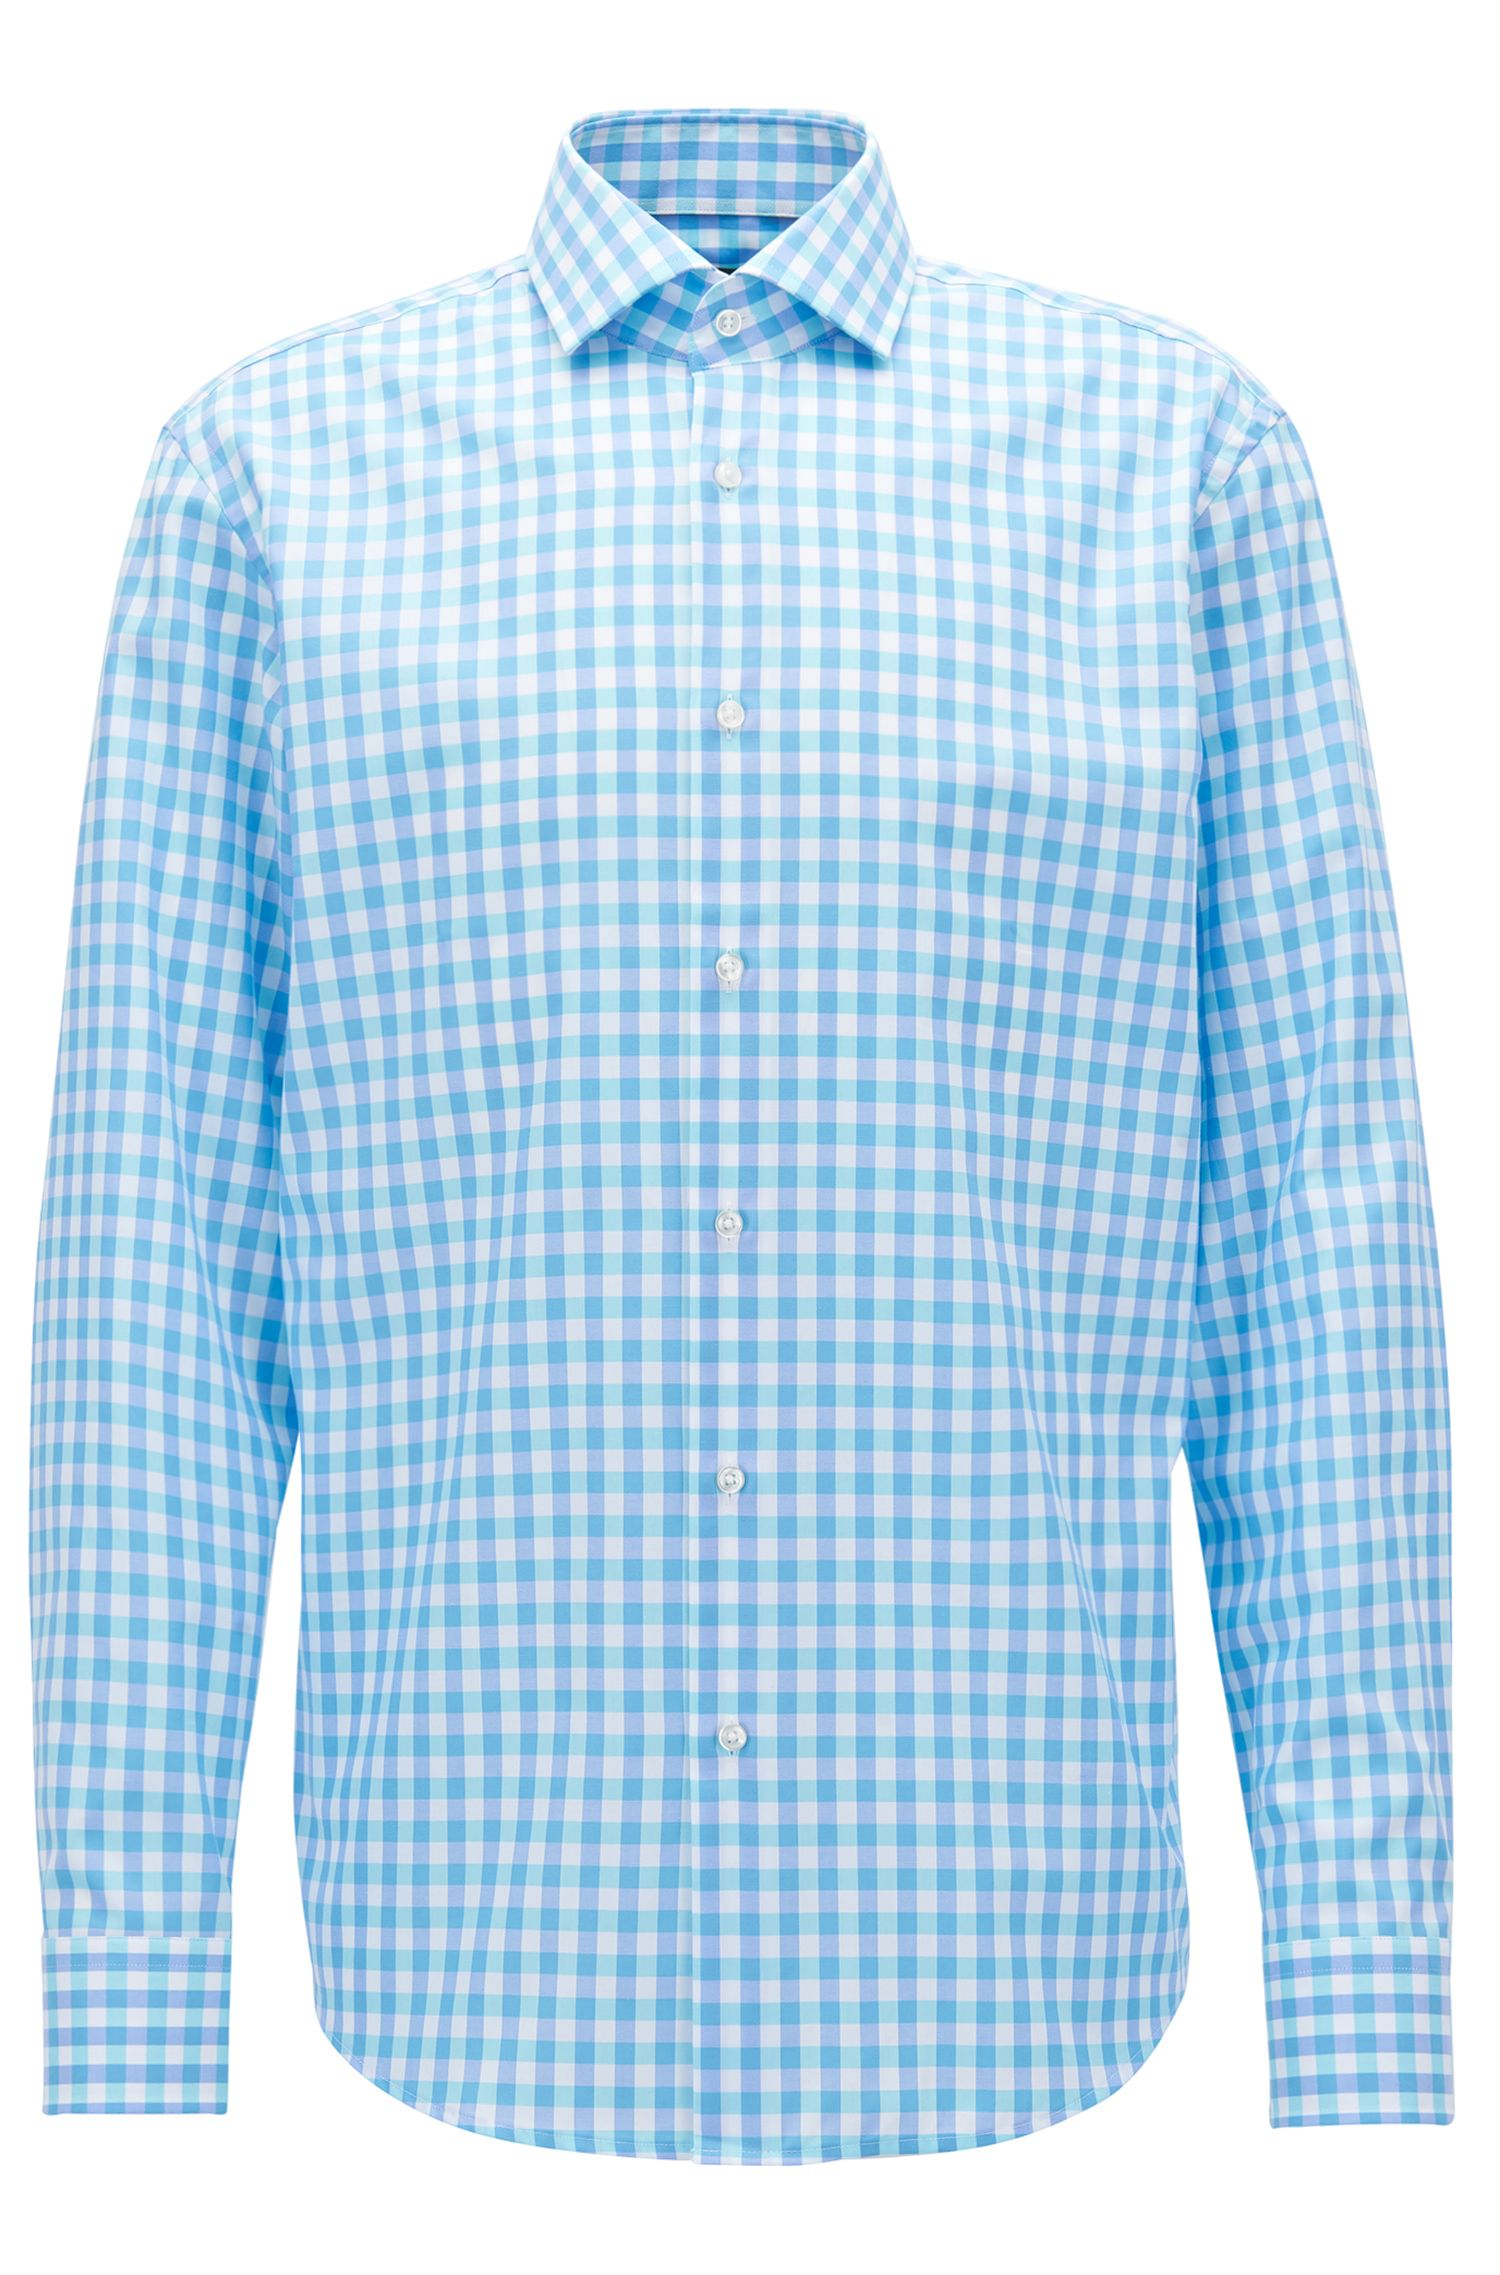 Windowpane Cotton Dress Shirt, Regular FIt | Gordon